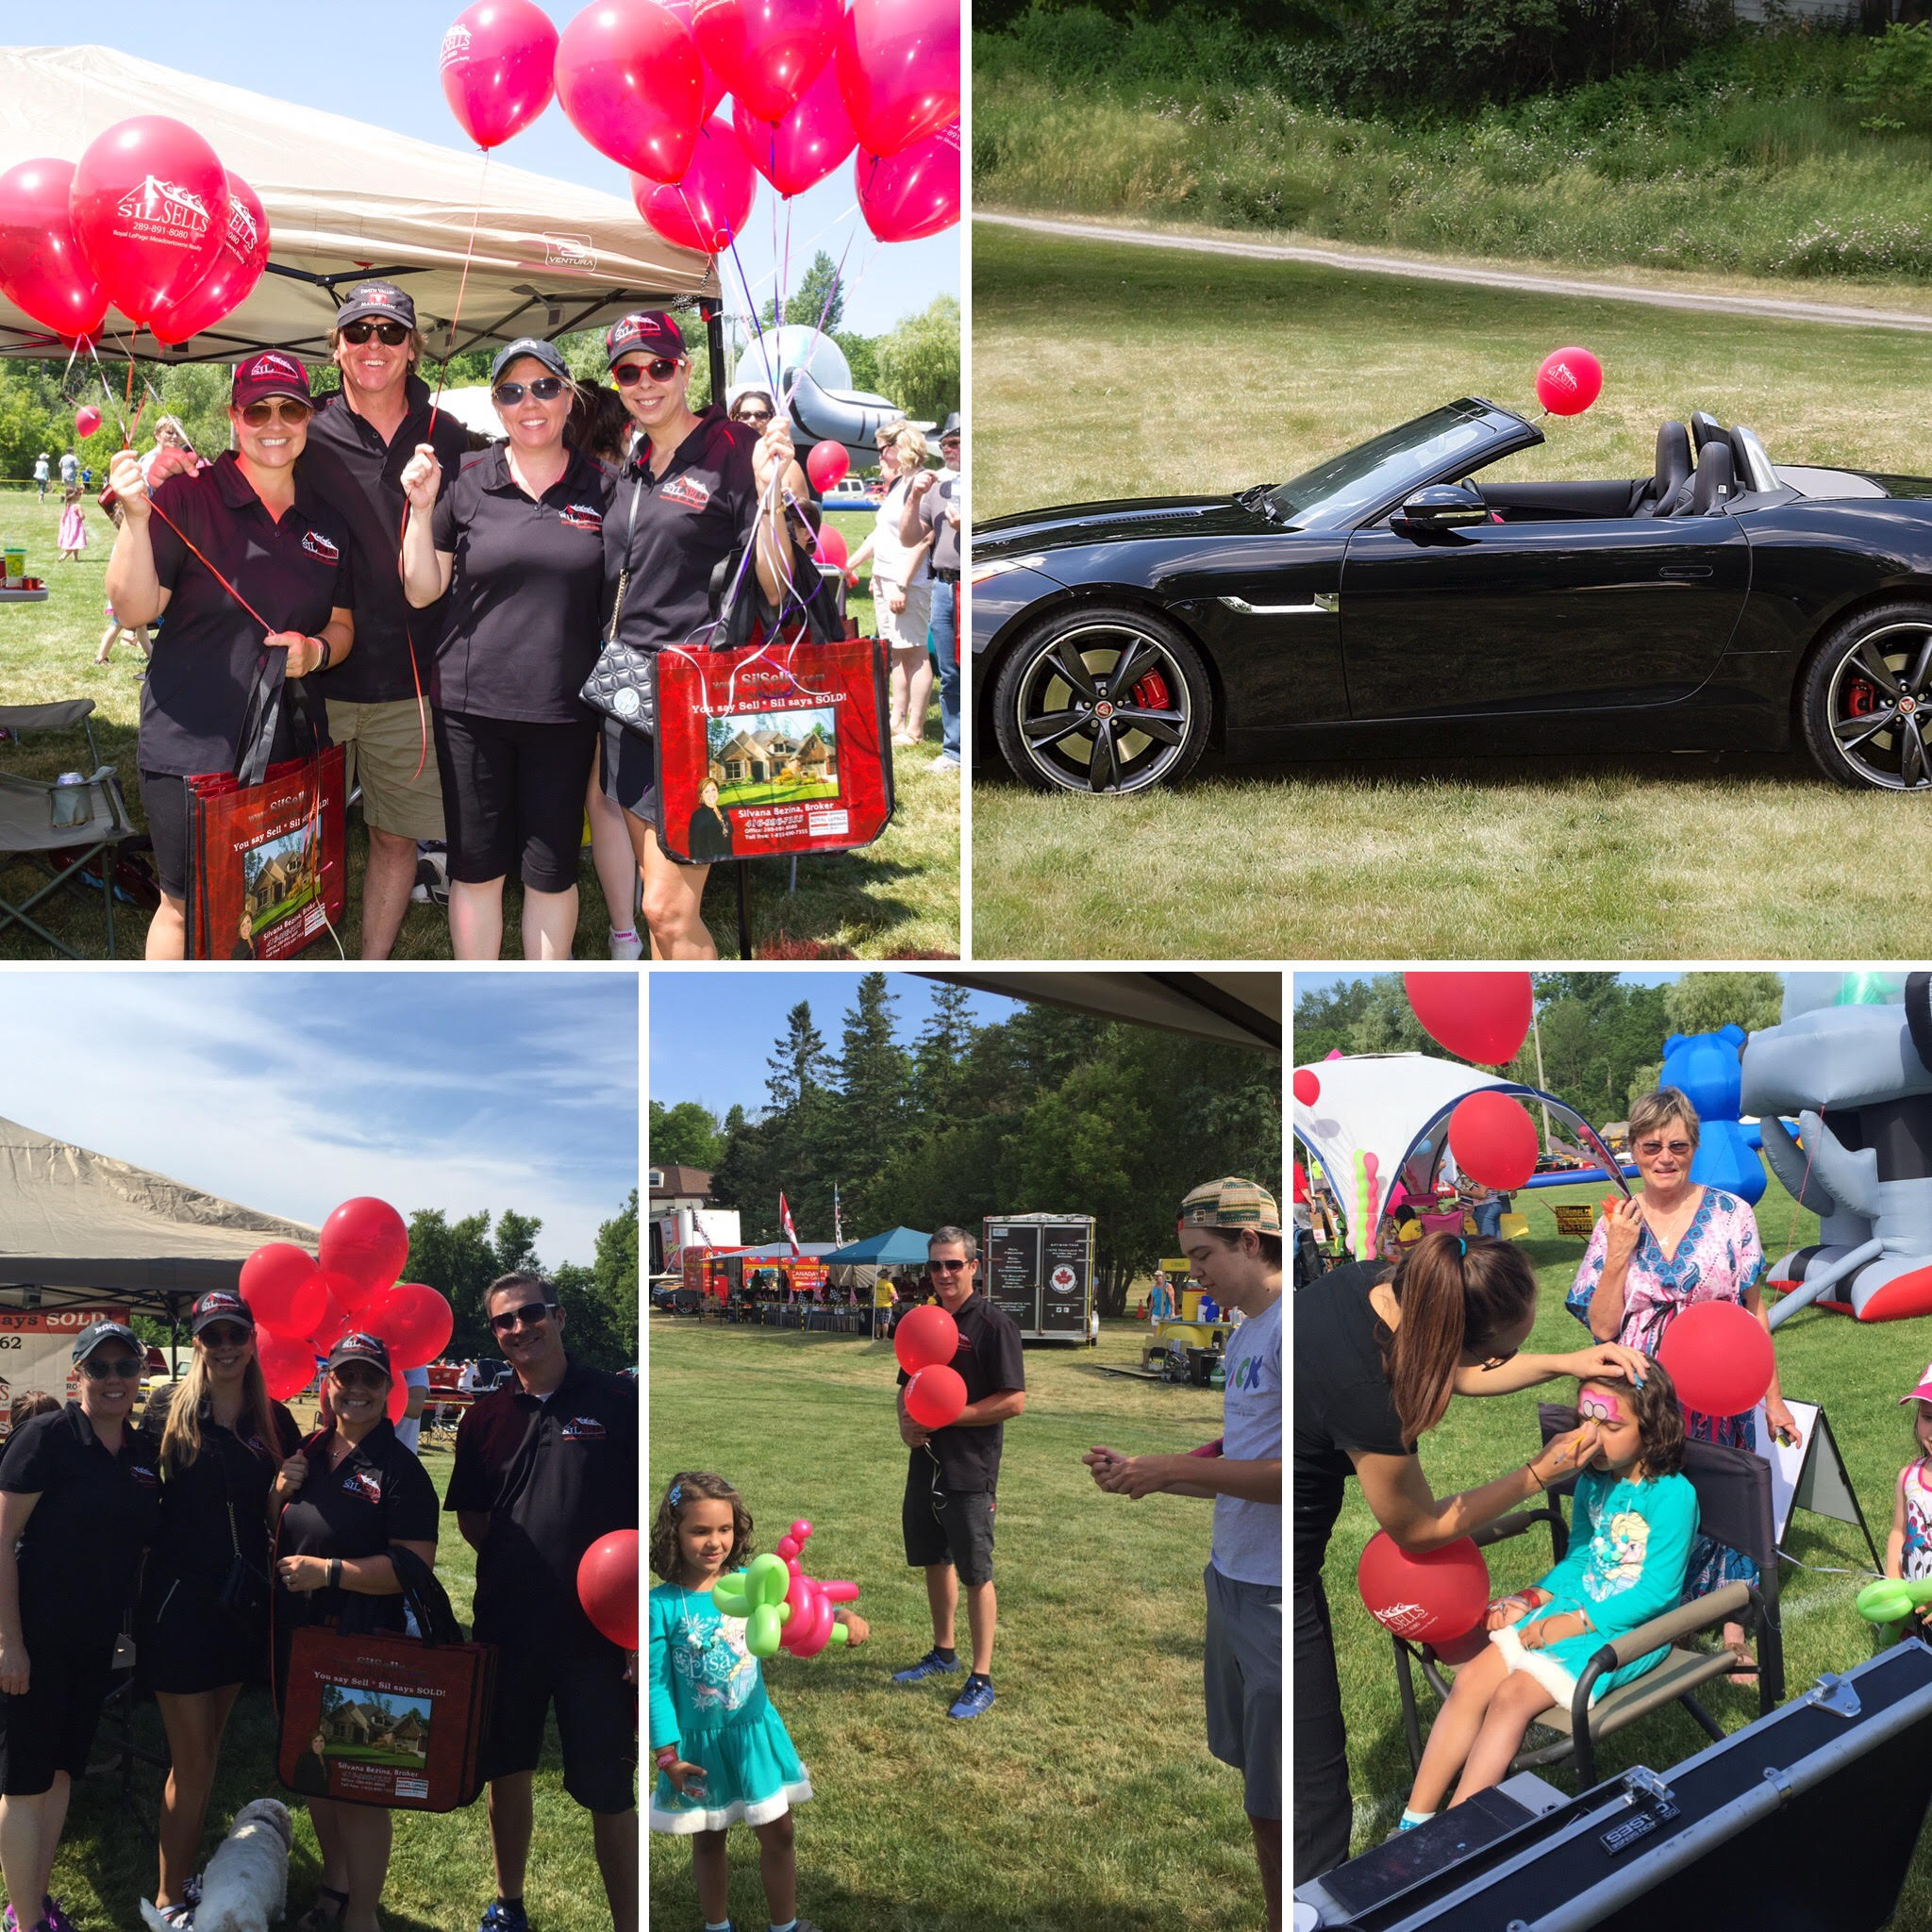 THE SILSELLS TEAM AT THE CLASSICS AGAINST CANCER 2016 CAR SHOW IN GEORGETOWN